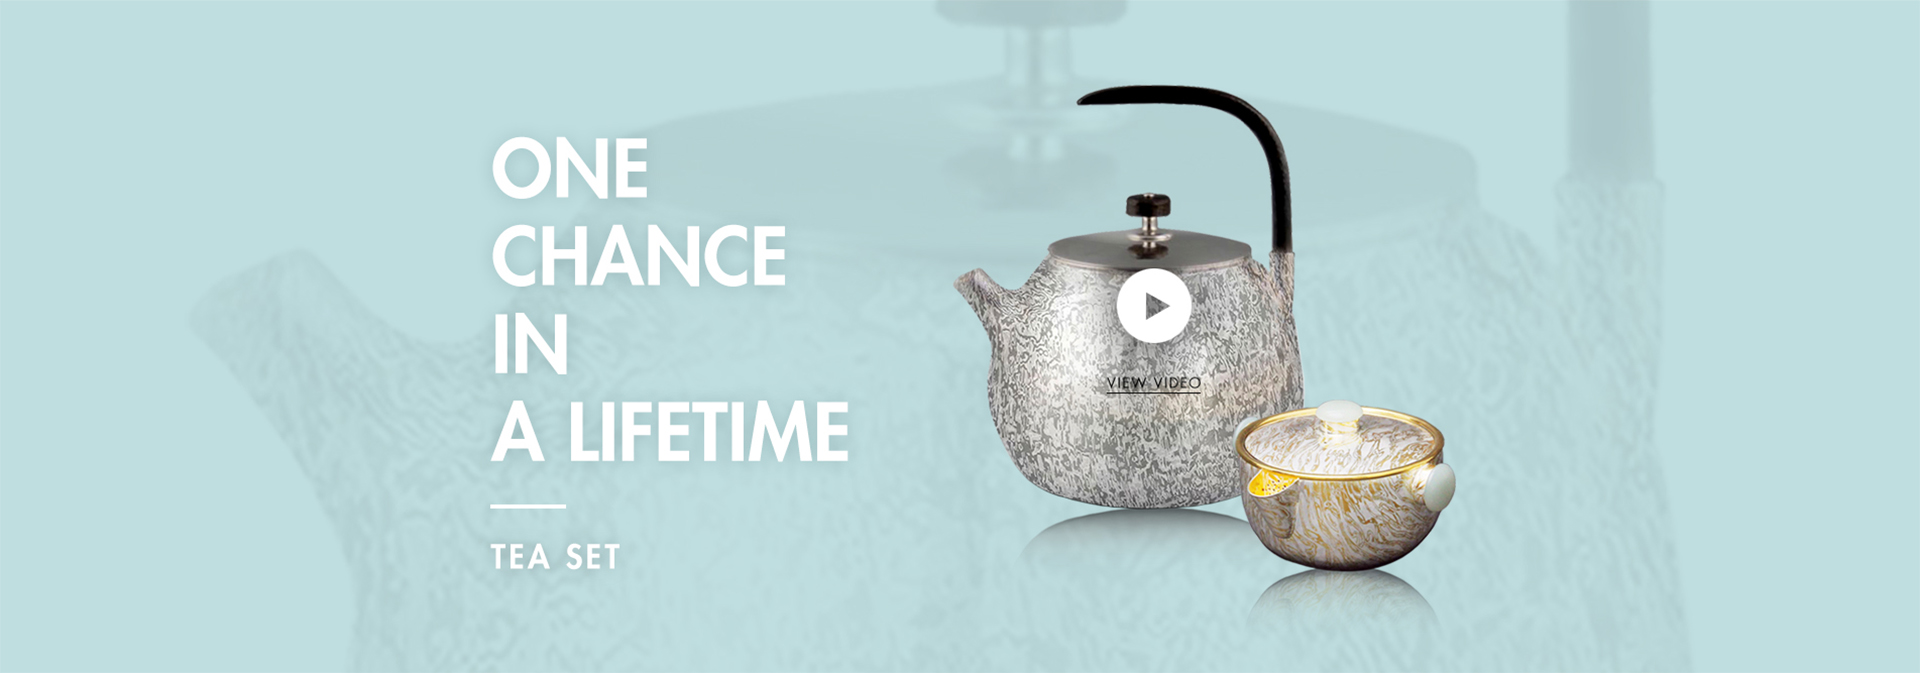 WEI YEE's Tea Set|One Chance in a Lifetime